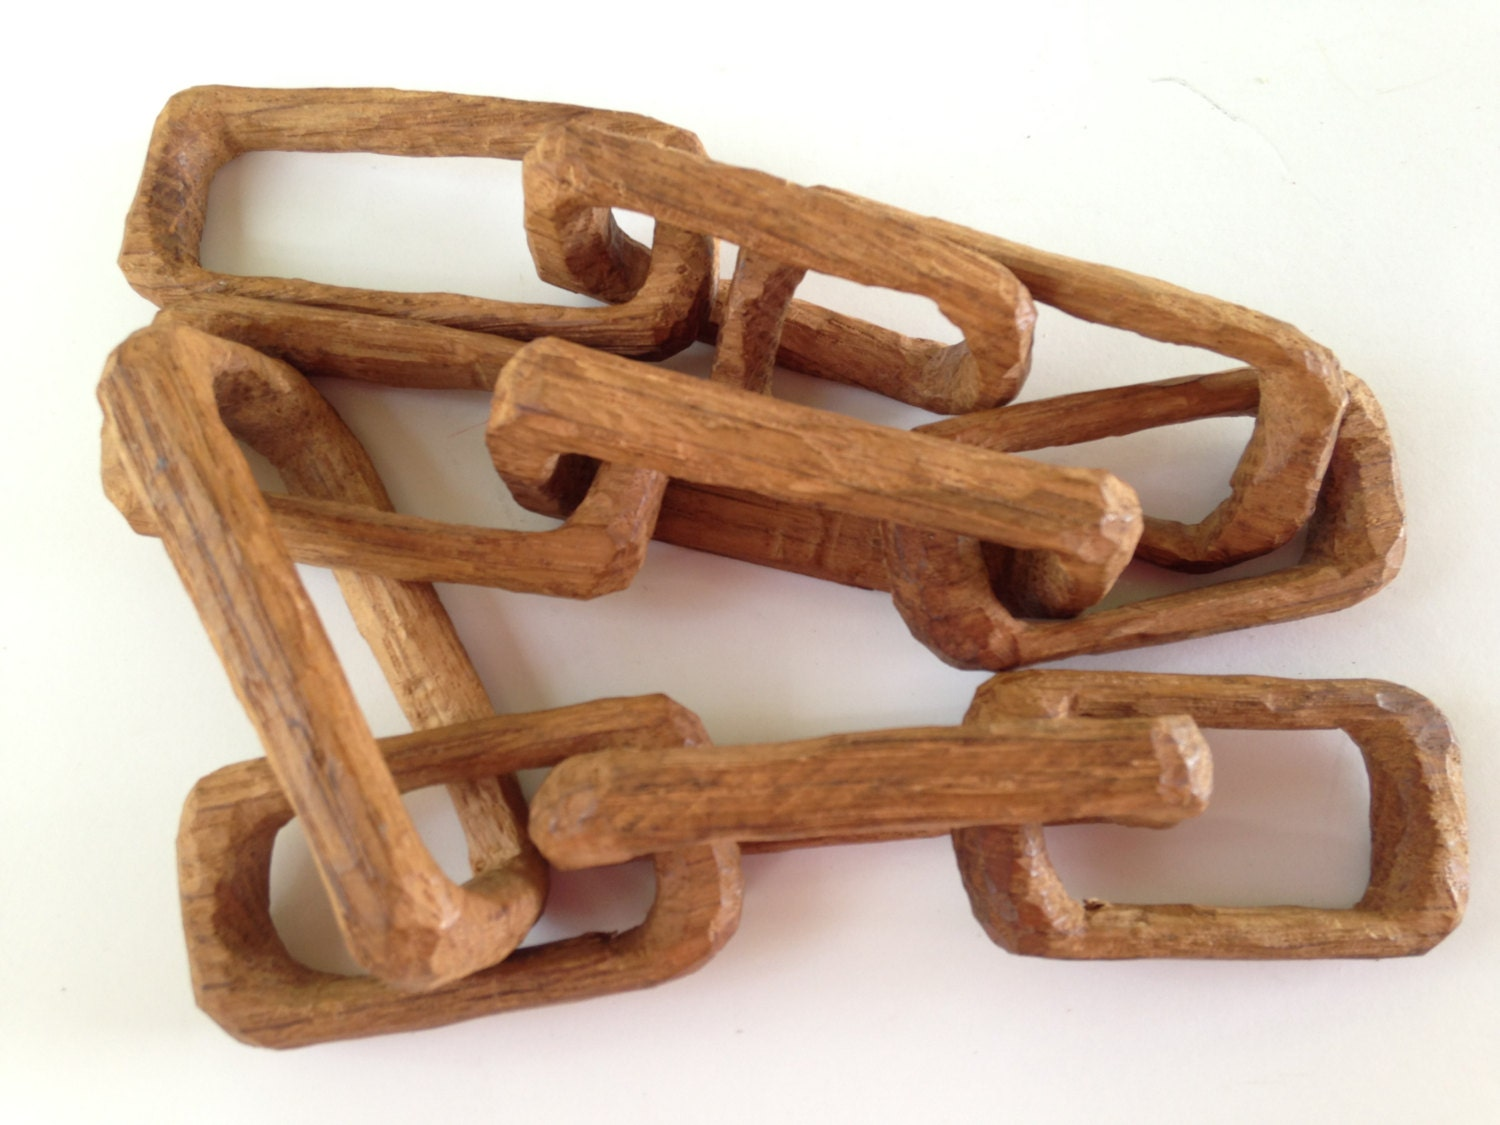 Hand Carved Wooden Chain Carved From Solid Piece Of Wood